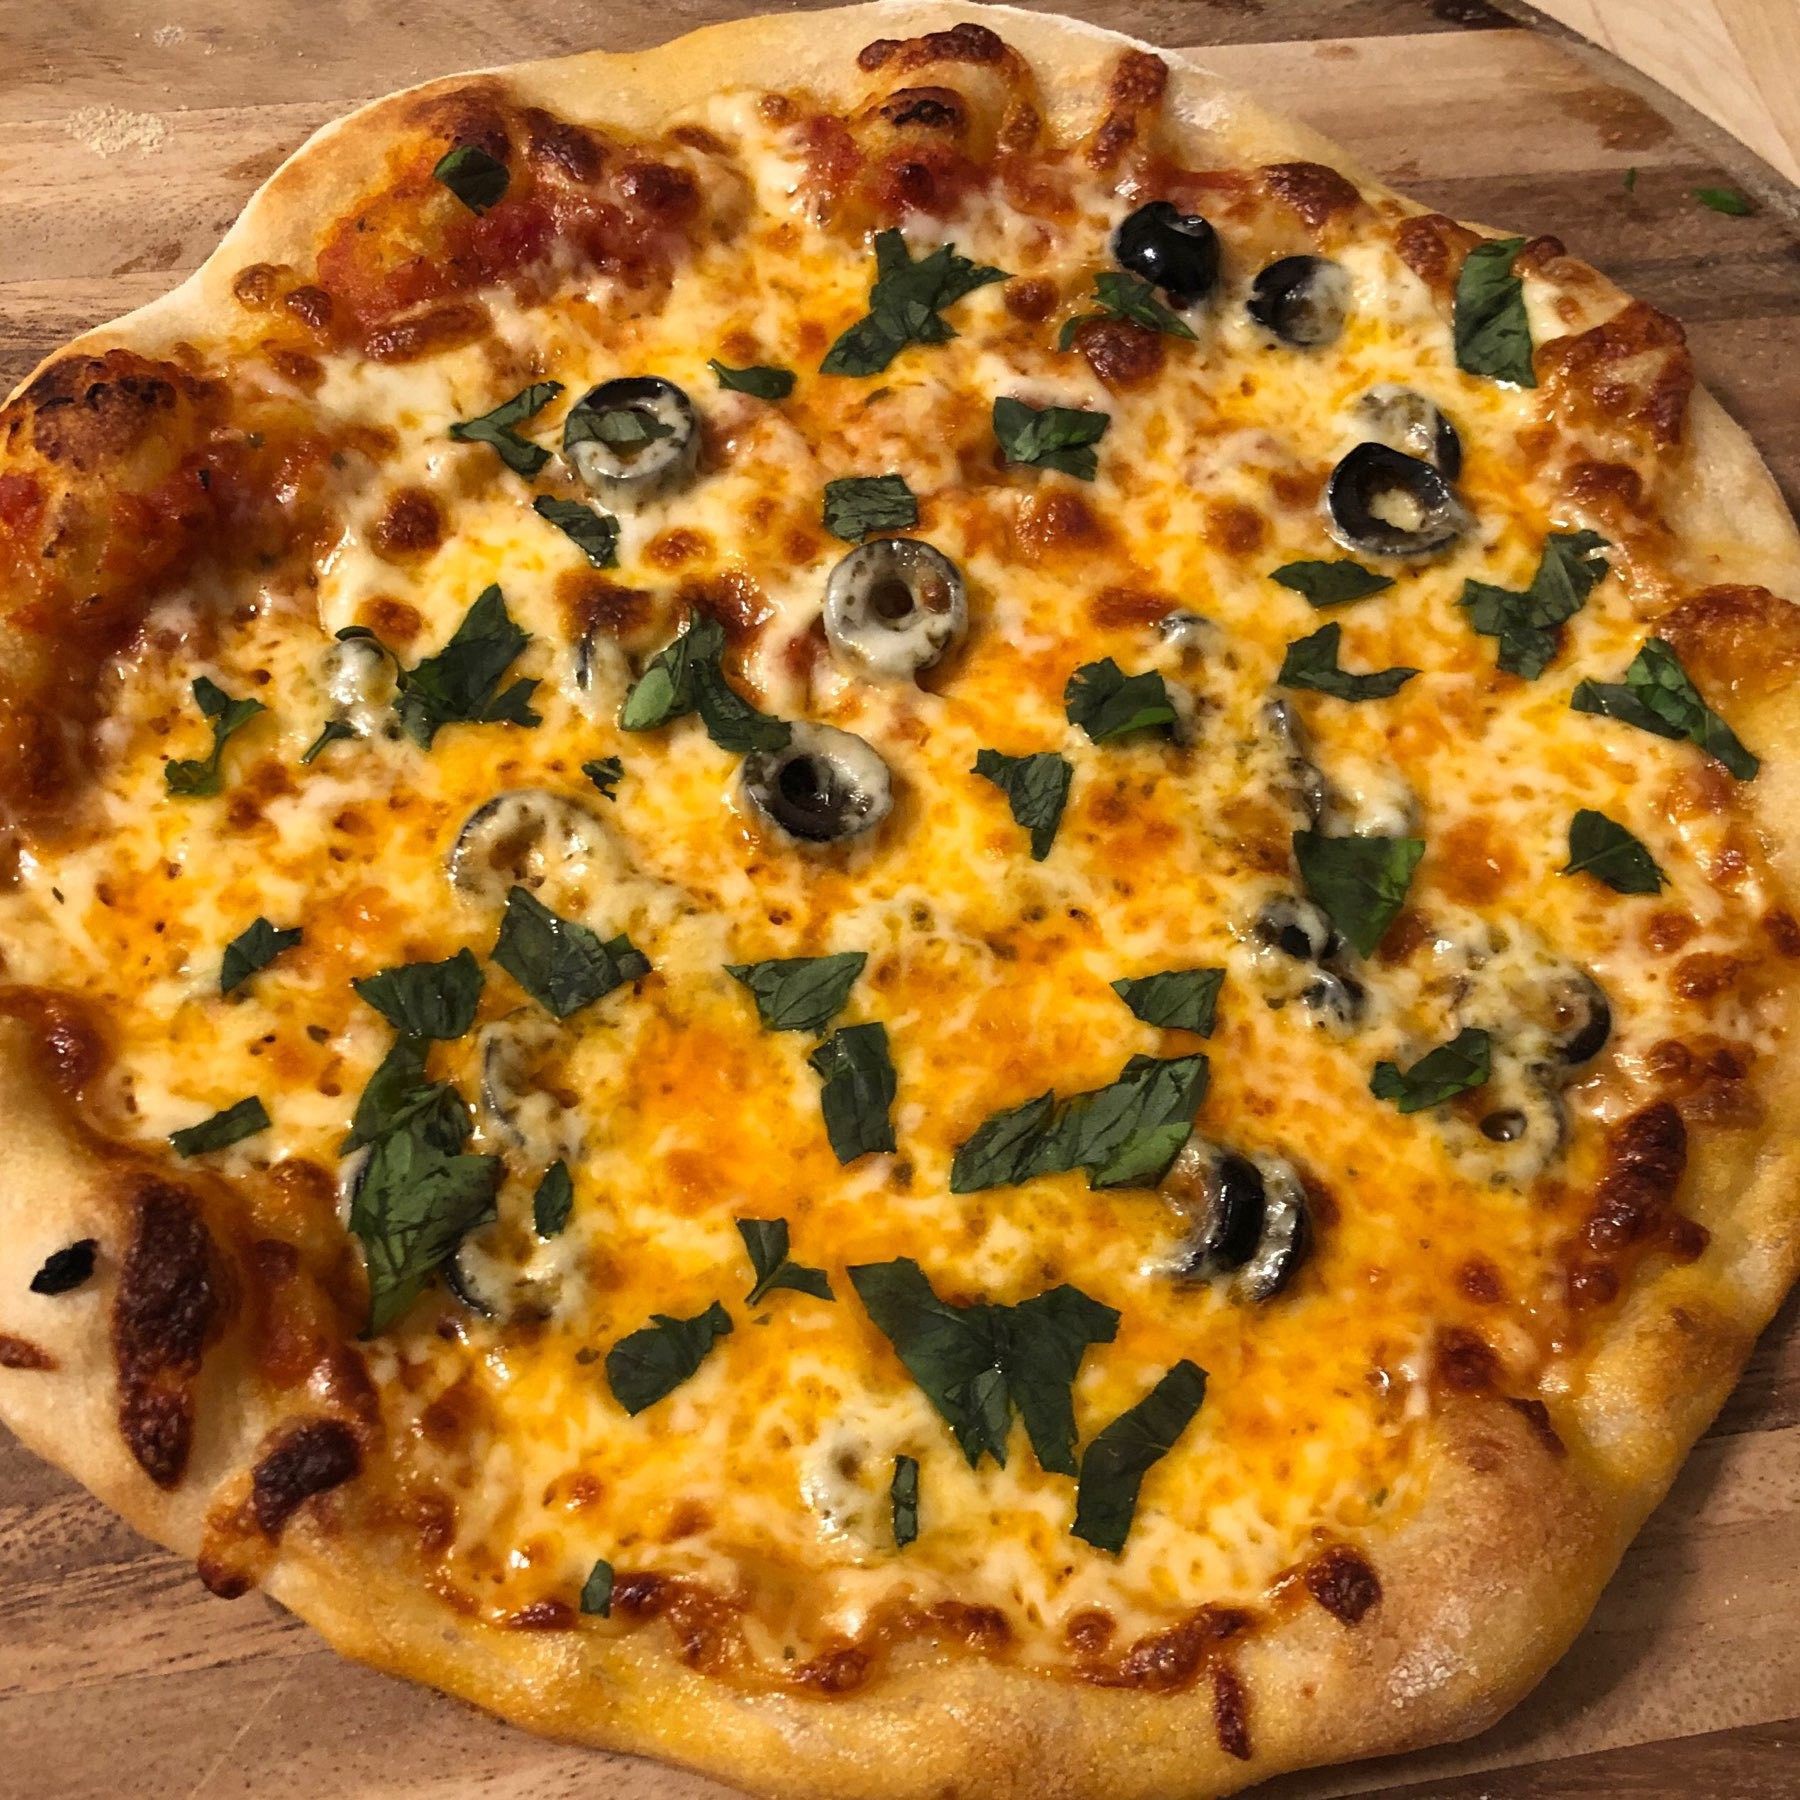 Fully baked pizza with olives and basil.